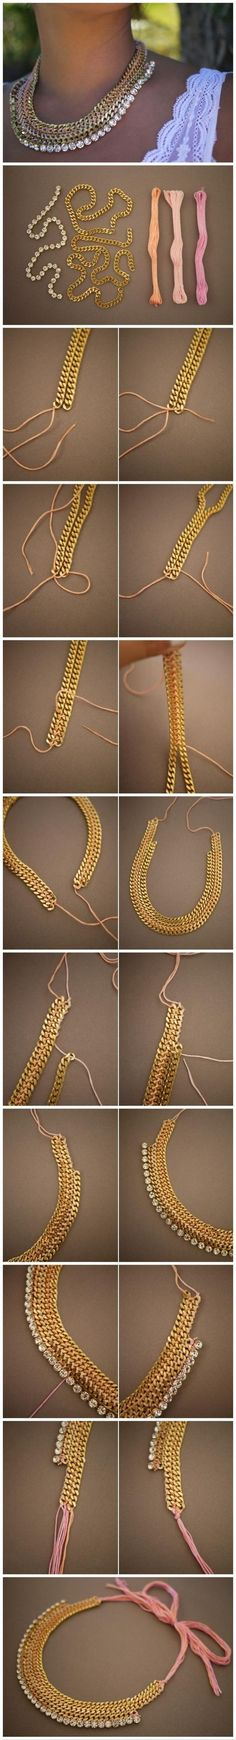 DIY necklace!